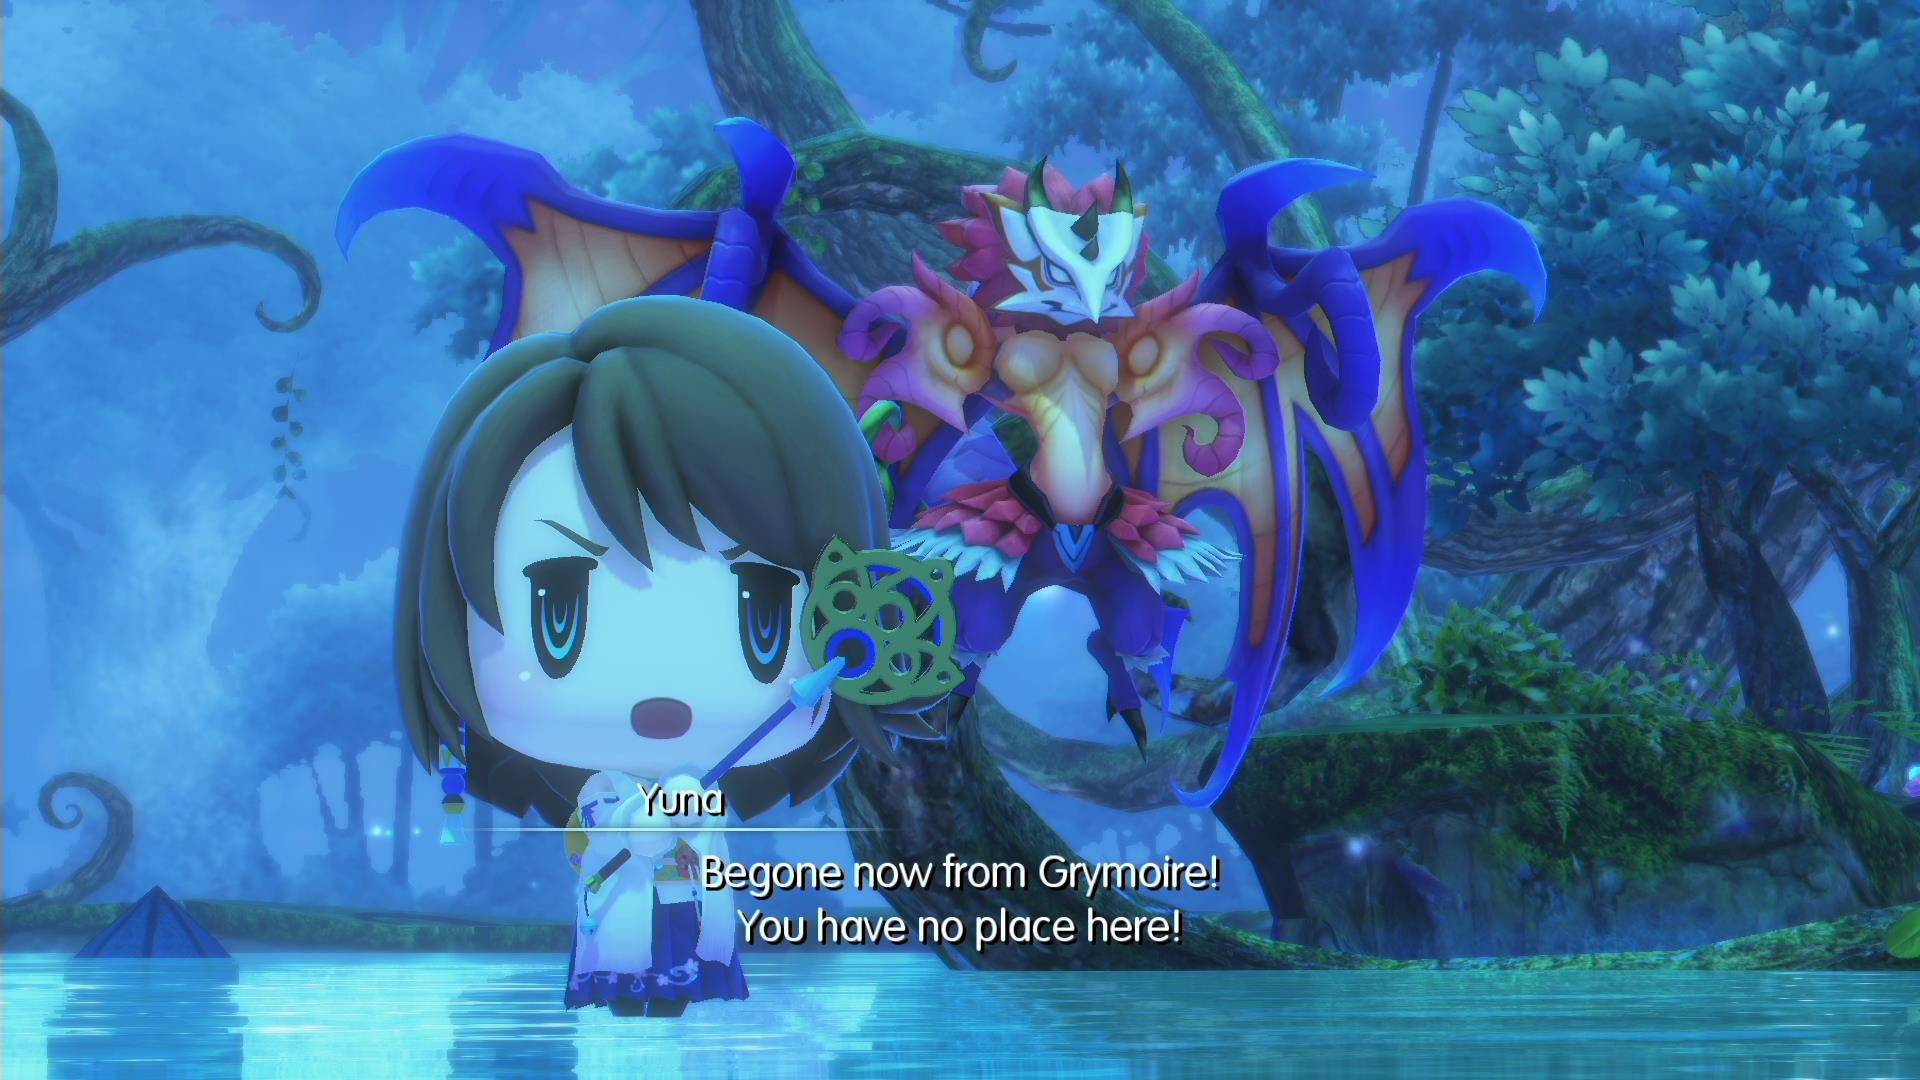 World Of Final Fantasy: The Kotaku Review